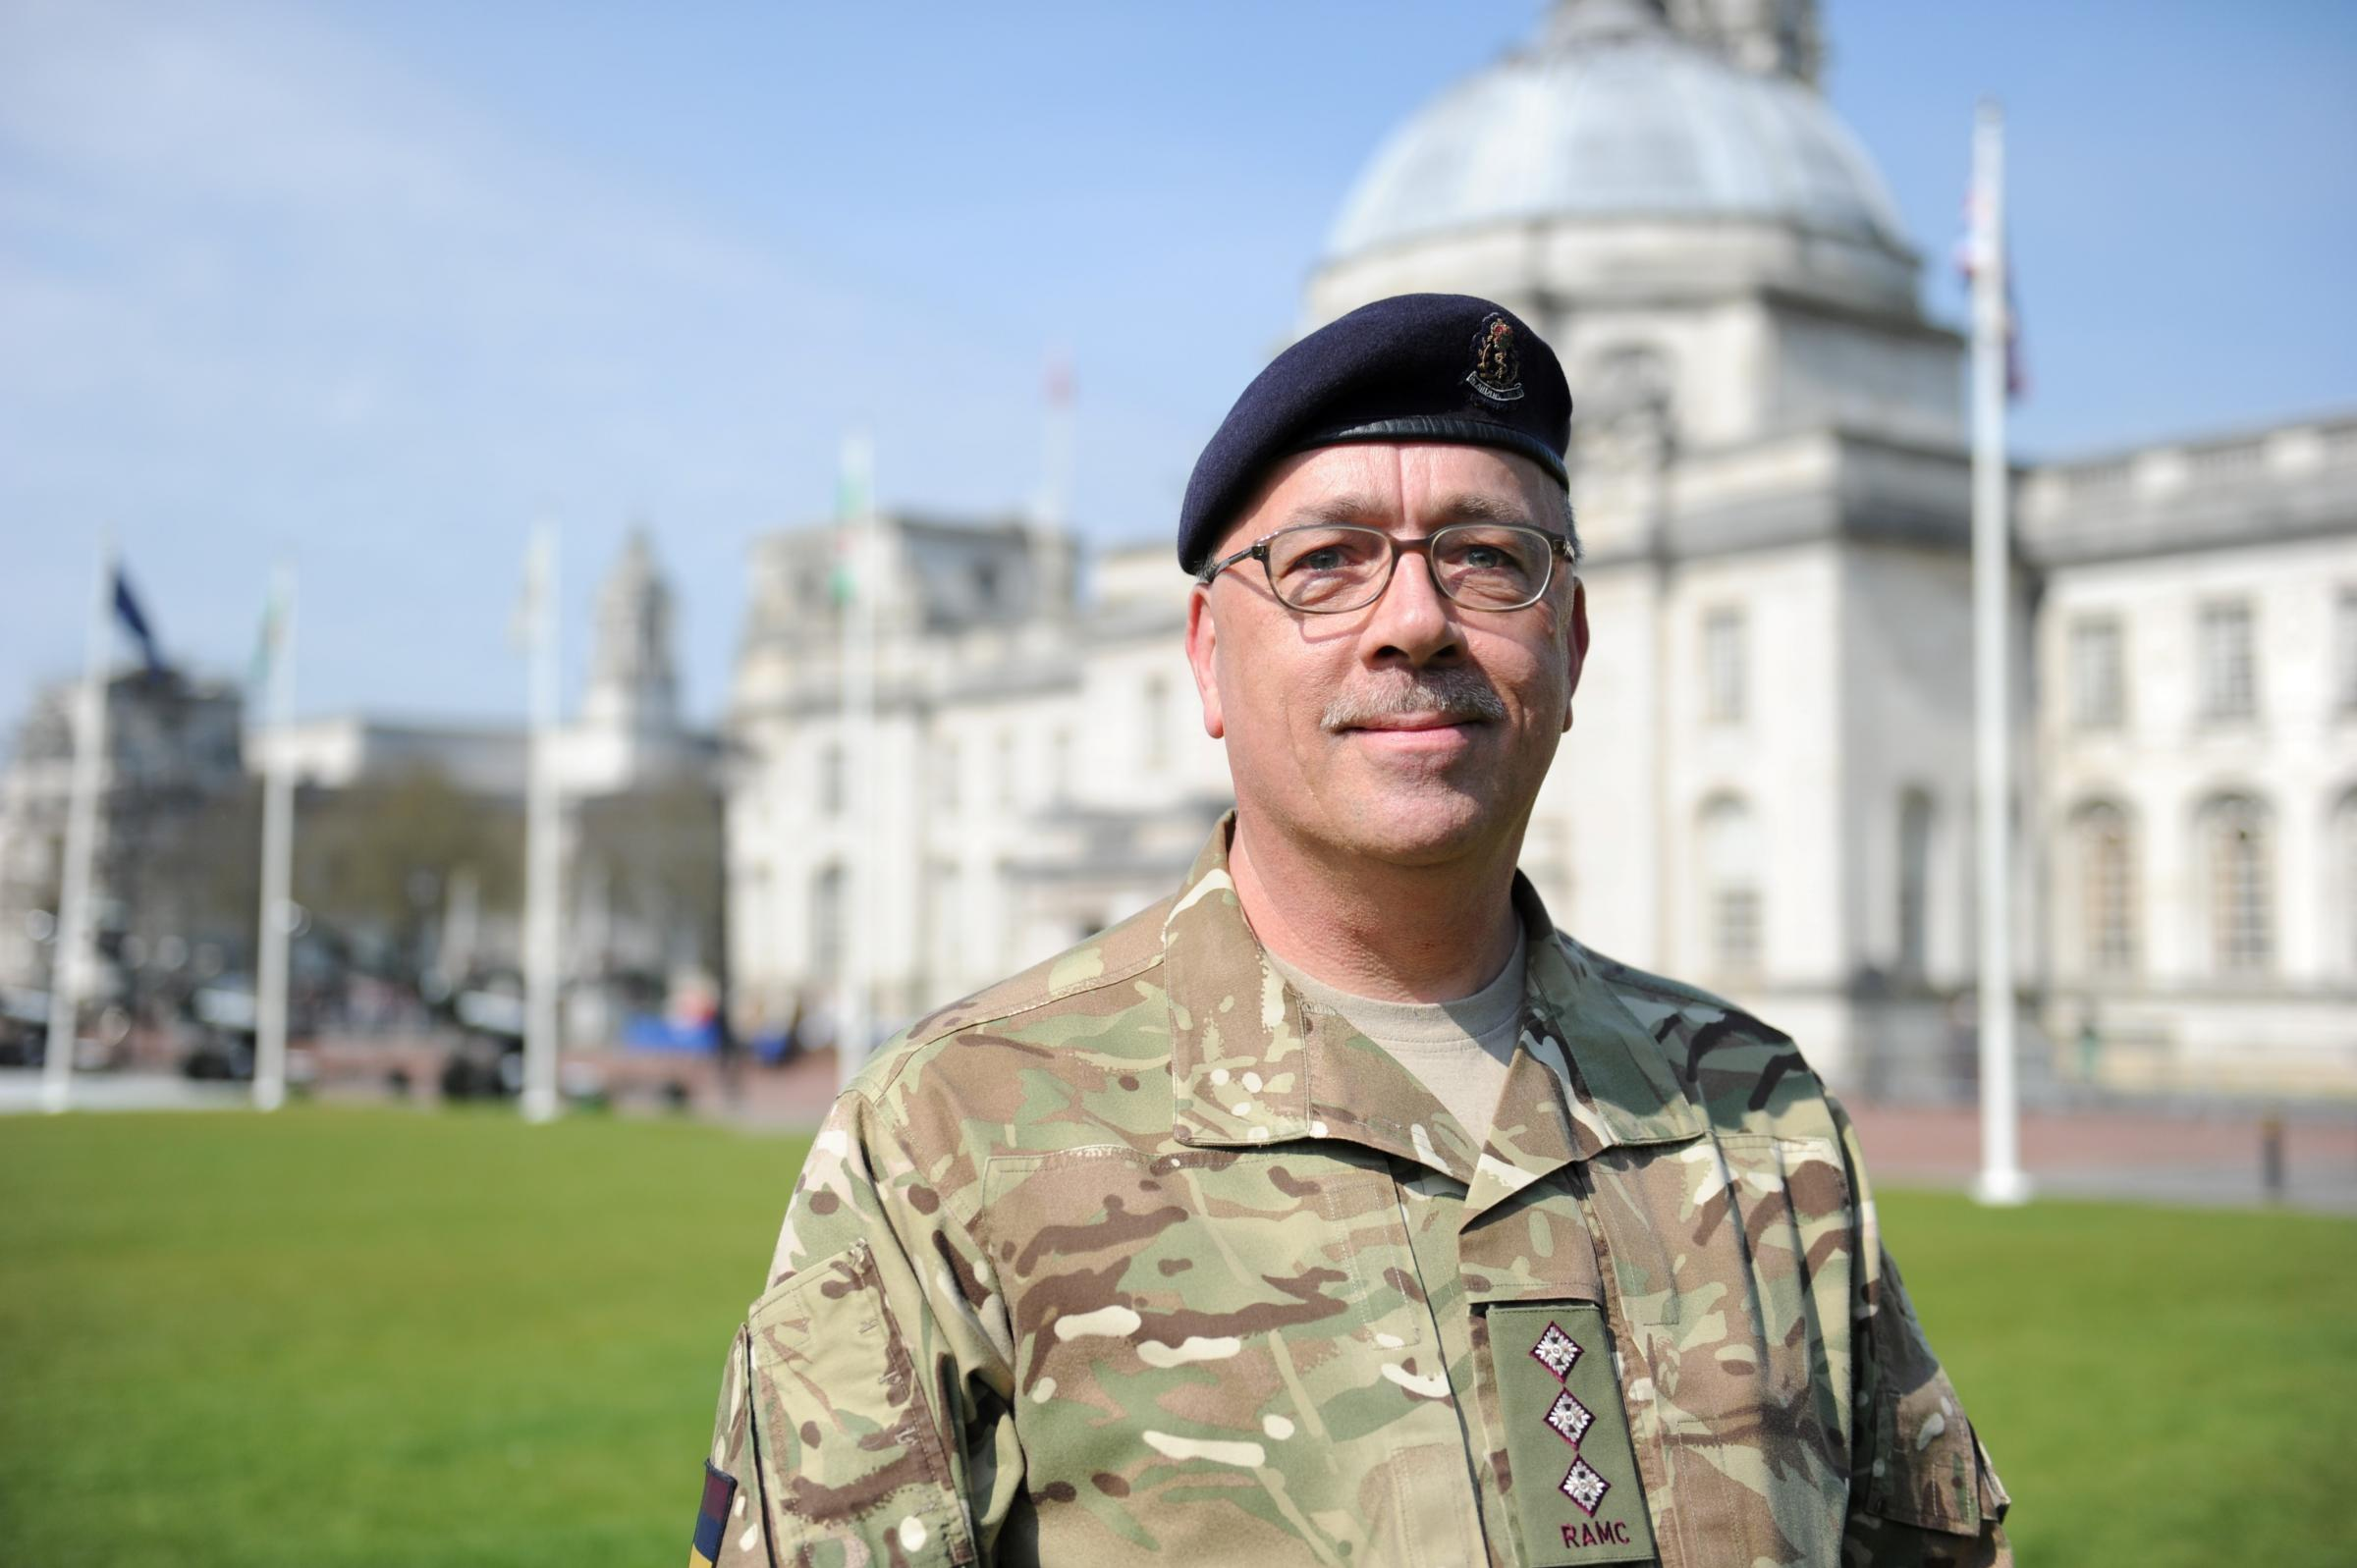 Gwent  Army medics honoured in freedom parade